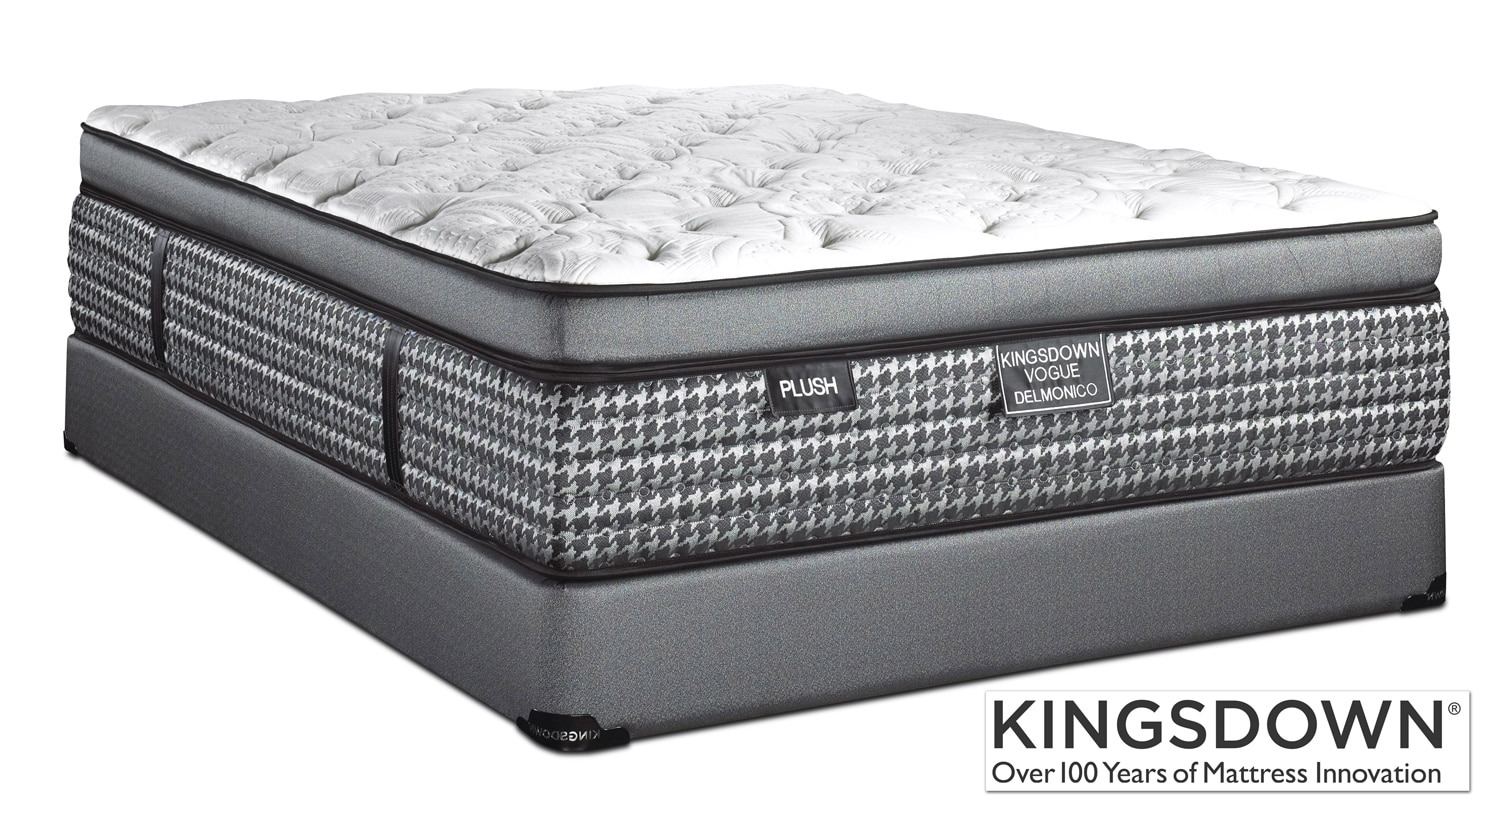 Kingsdown Delmonico Plush Queen Mattress/Boxspring Set